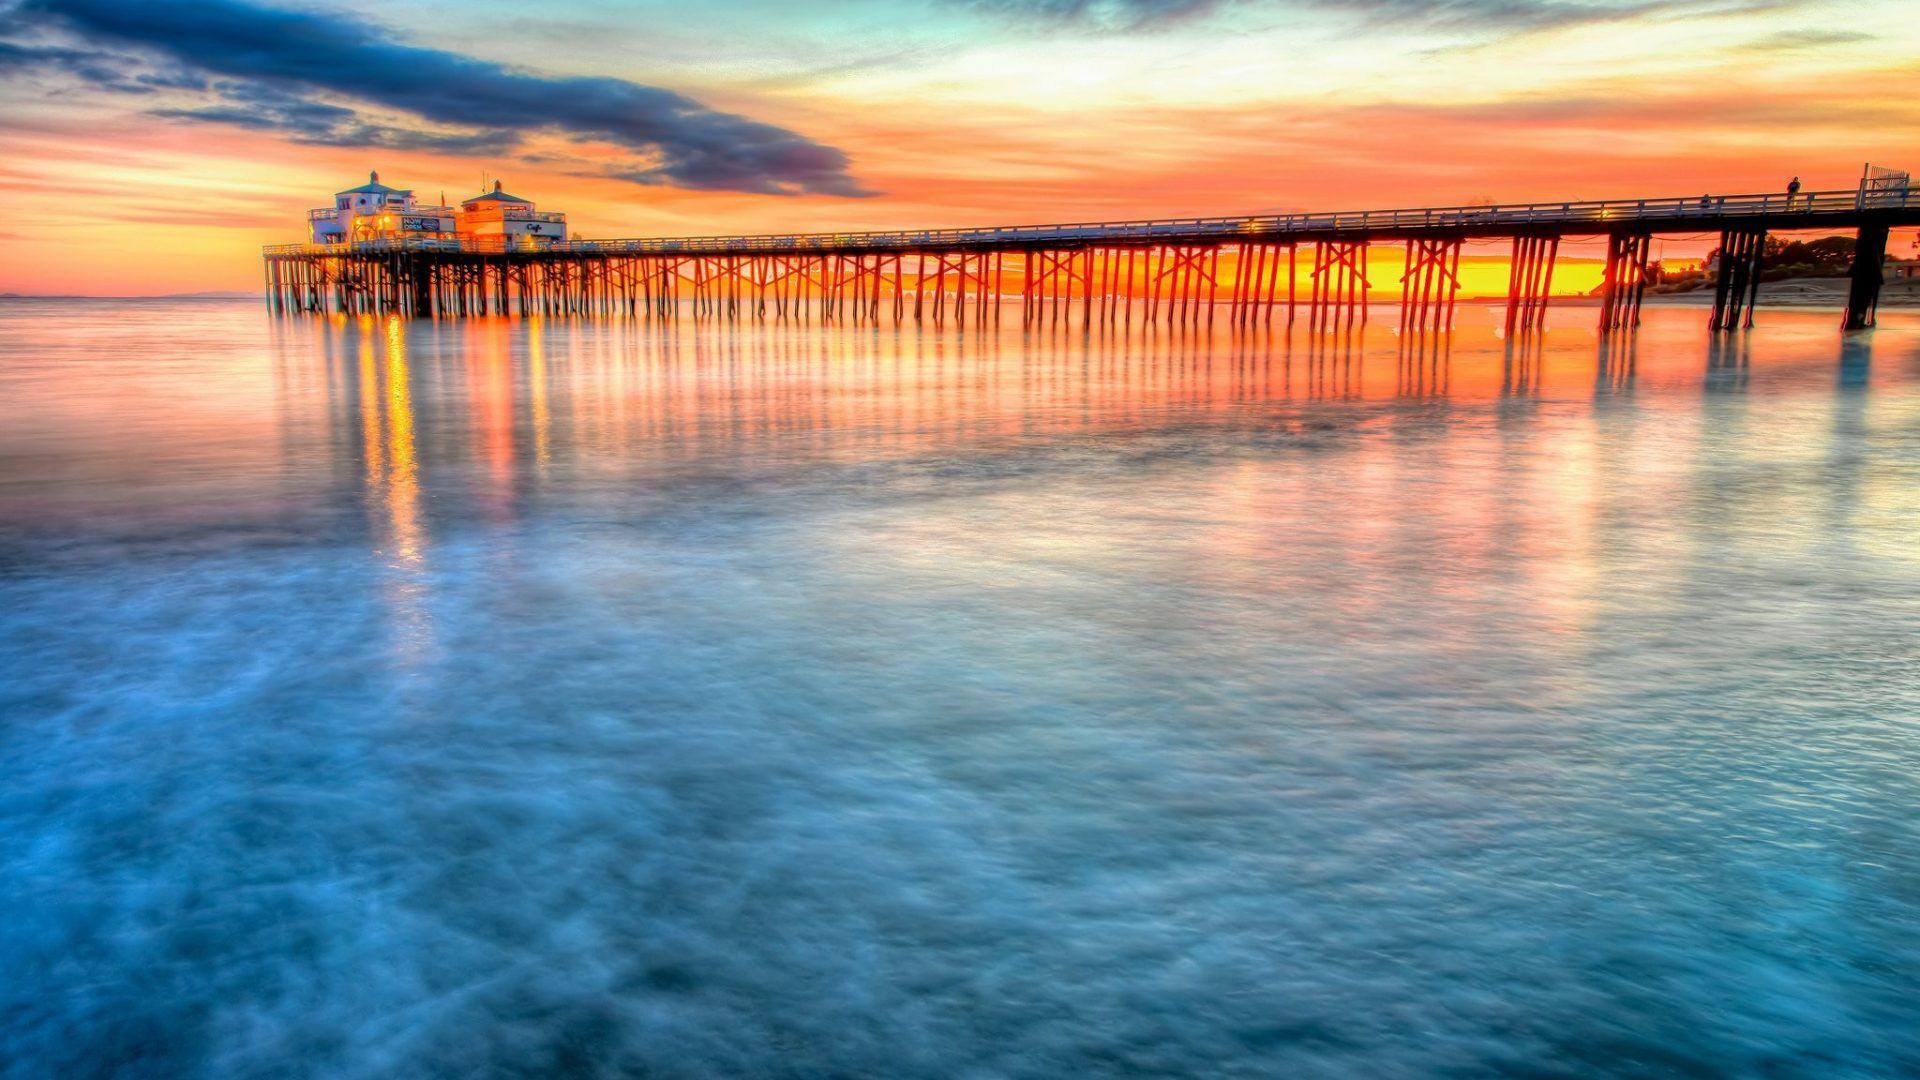 40 Hollywood Beach Sunset Wallpapers   Download at WallpaperBro 1920x1080